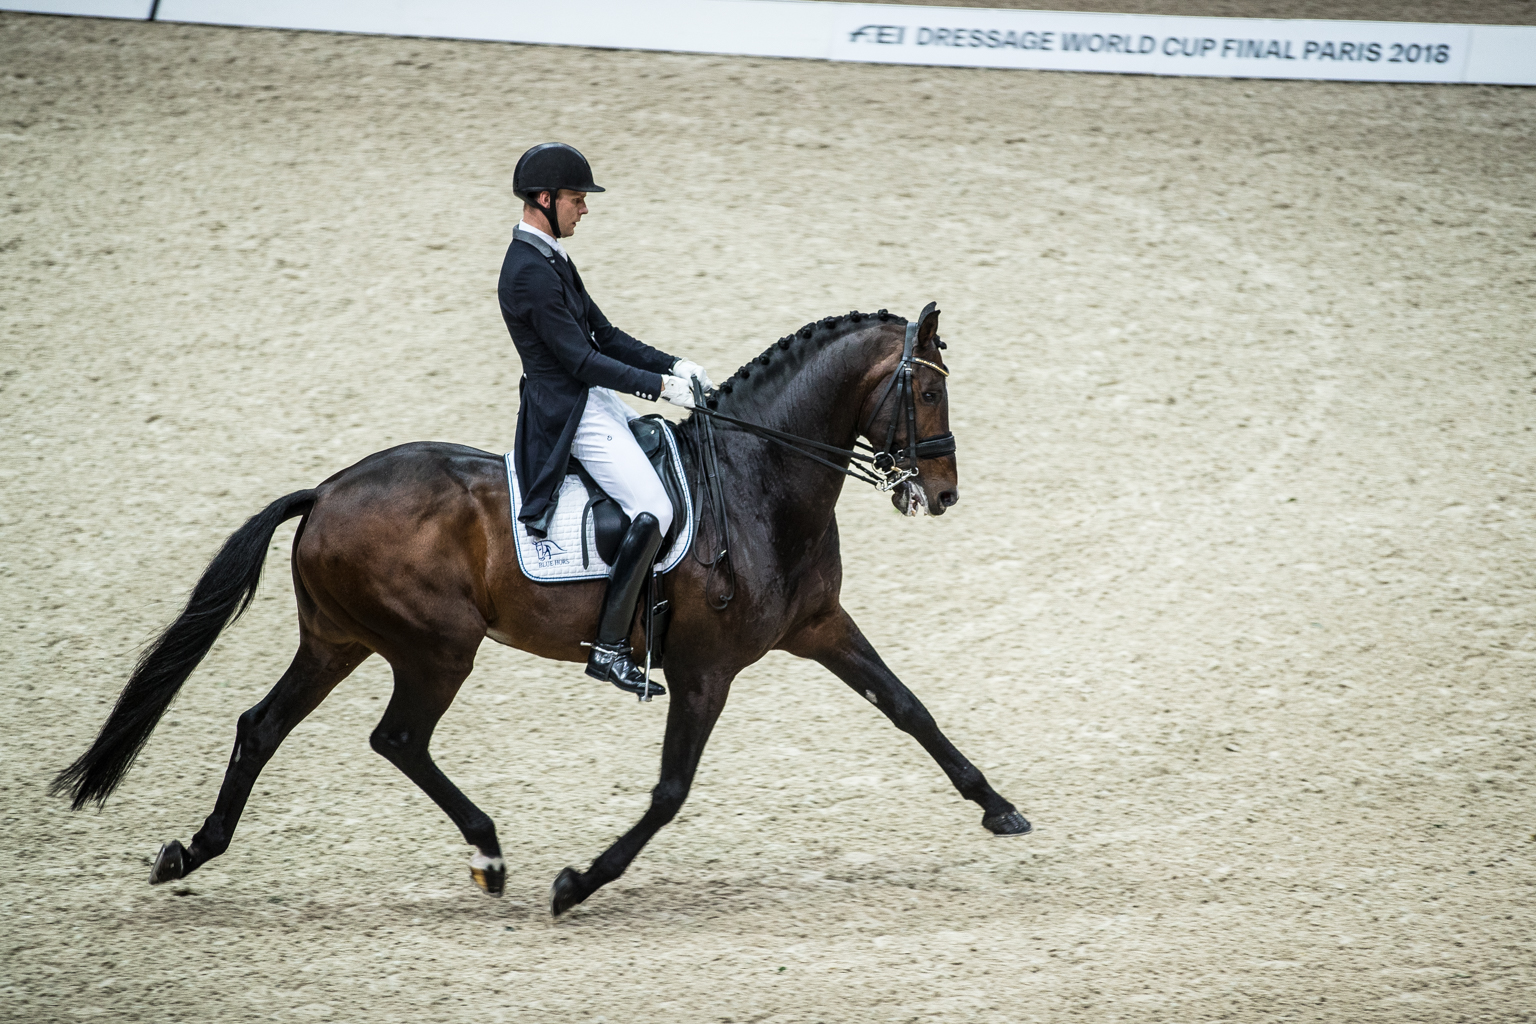 Fitness On Toast - FEI Dressage World Cup Finals Paris April 2018 France-23